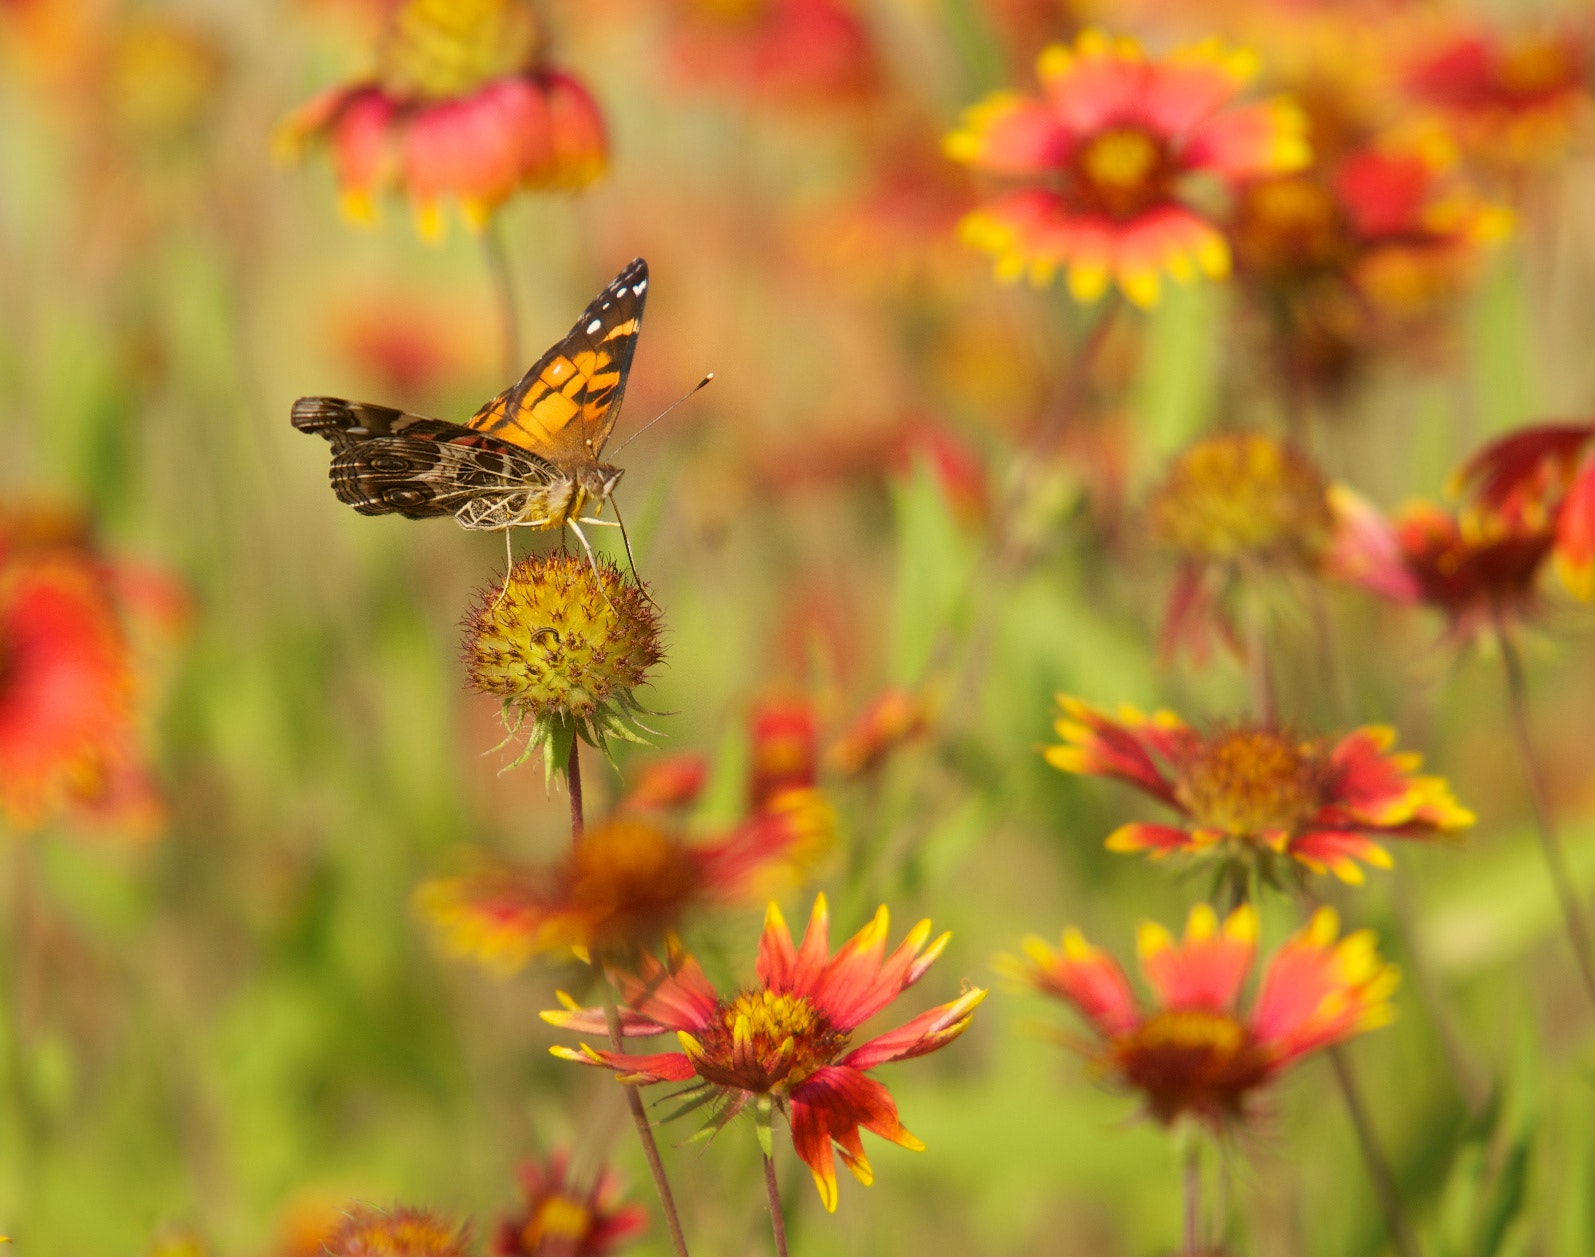 Photograph Garden of Color by Mike Fuhr on 500px